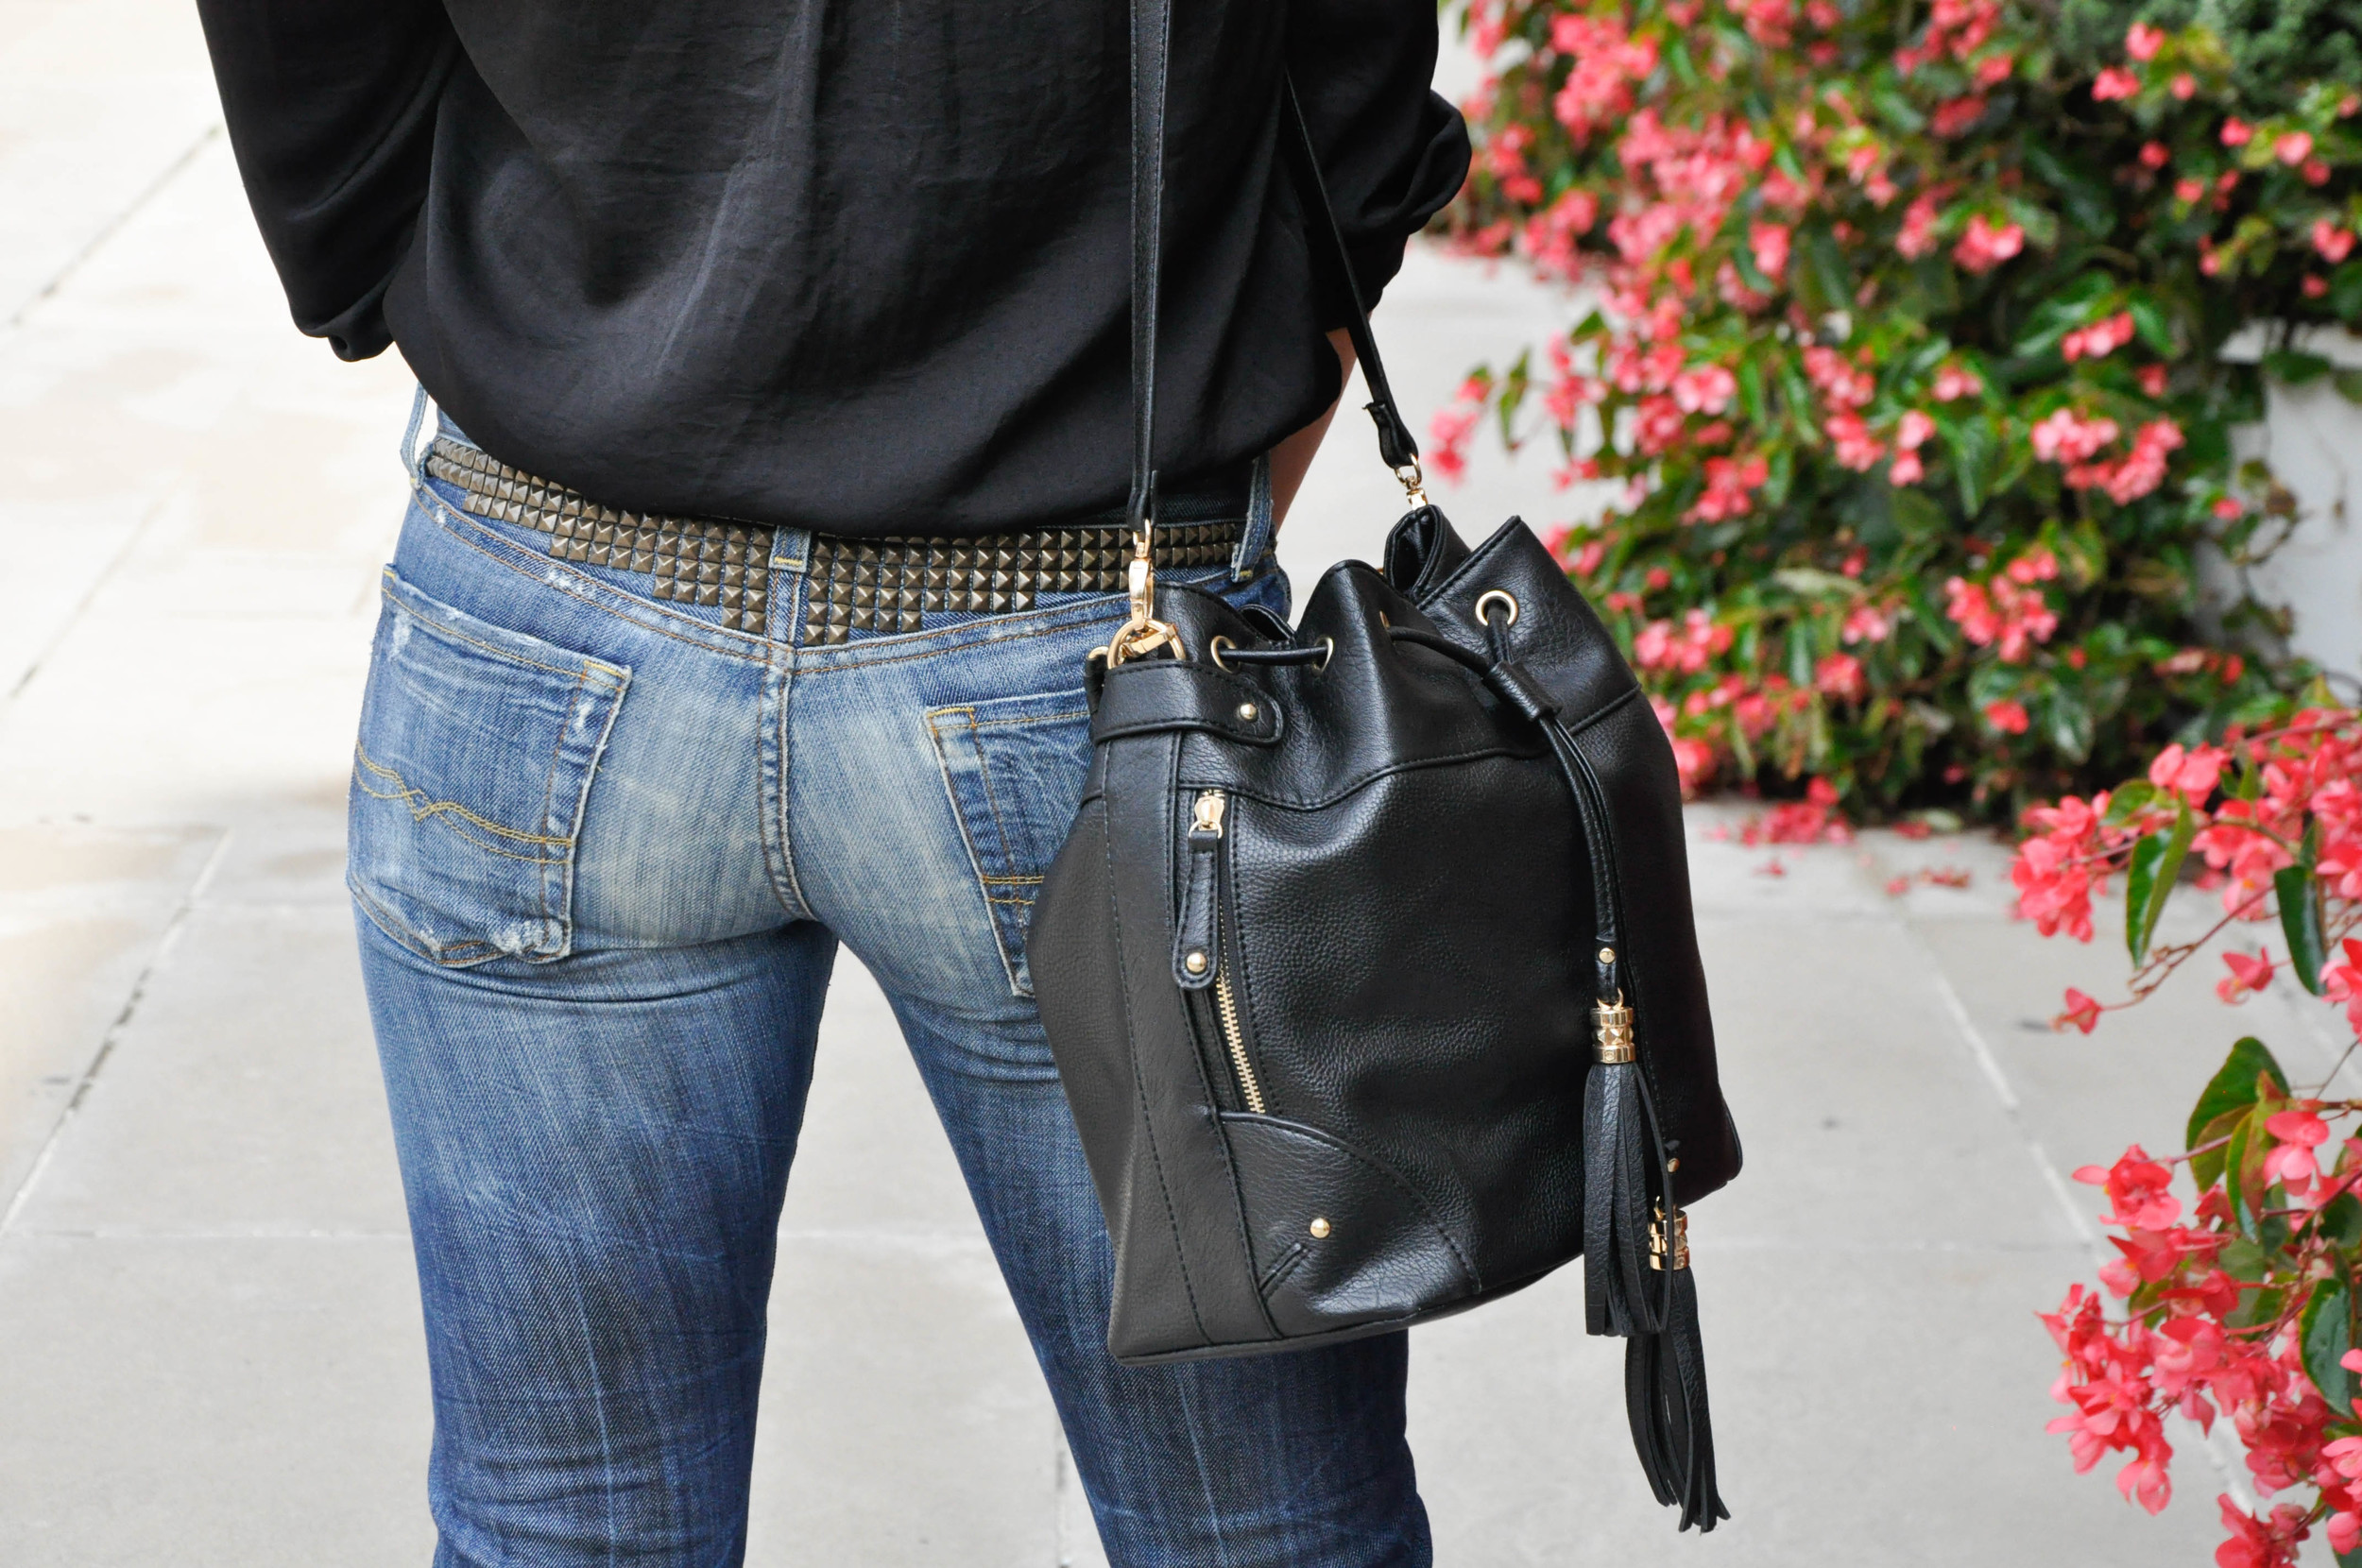 This is without a doubt my favorite part of this look! The pyramid studs on these Lucky Brands give these pair of jeans the upper hand among other jeans. They add an edginess that is praised and well-noticed on a night out with your friends. Also, they're is no need for a belt when you have an awesome detail like this to show off!